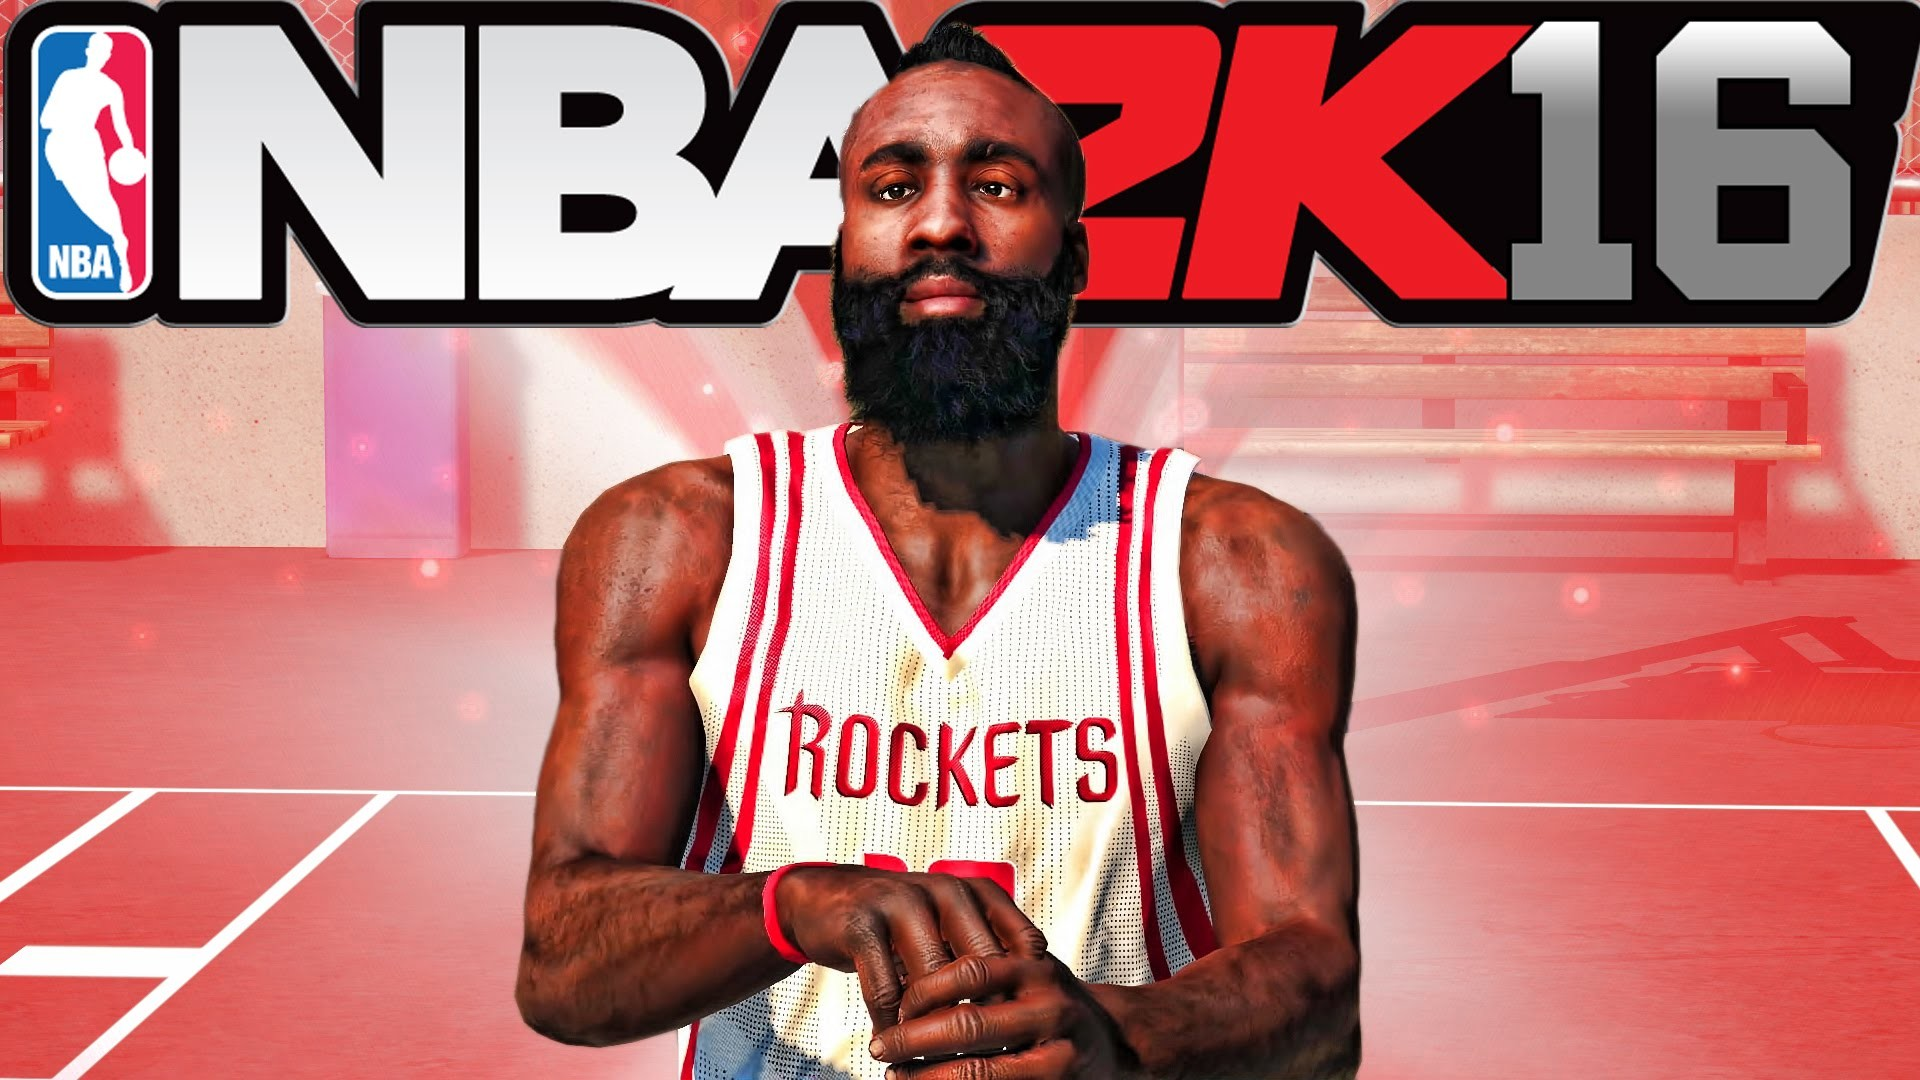 NBA 2K Wallpapers (81+ images)